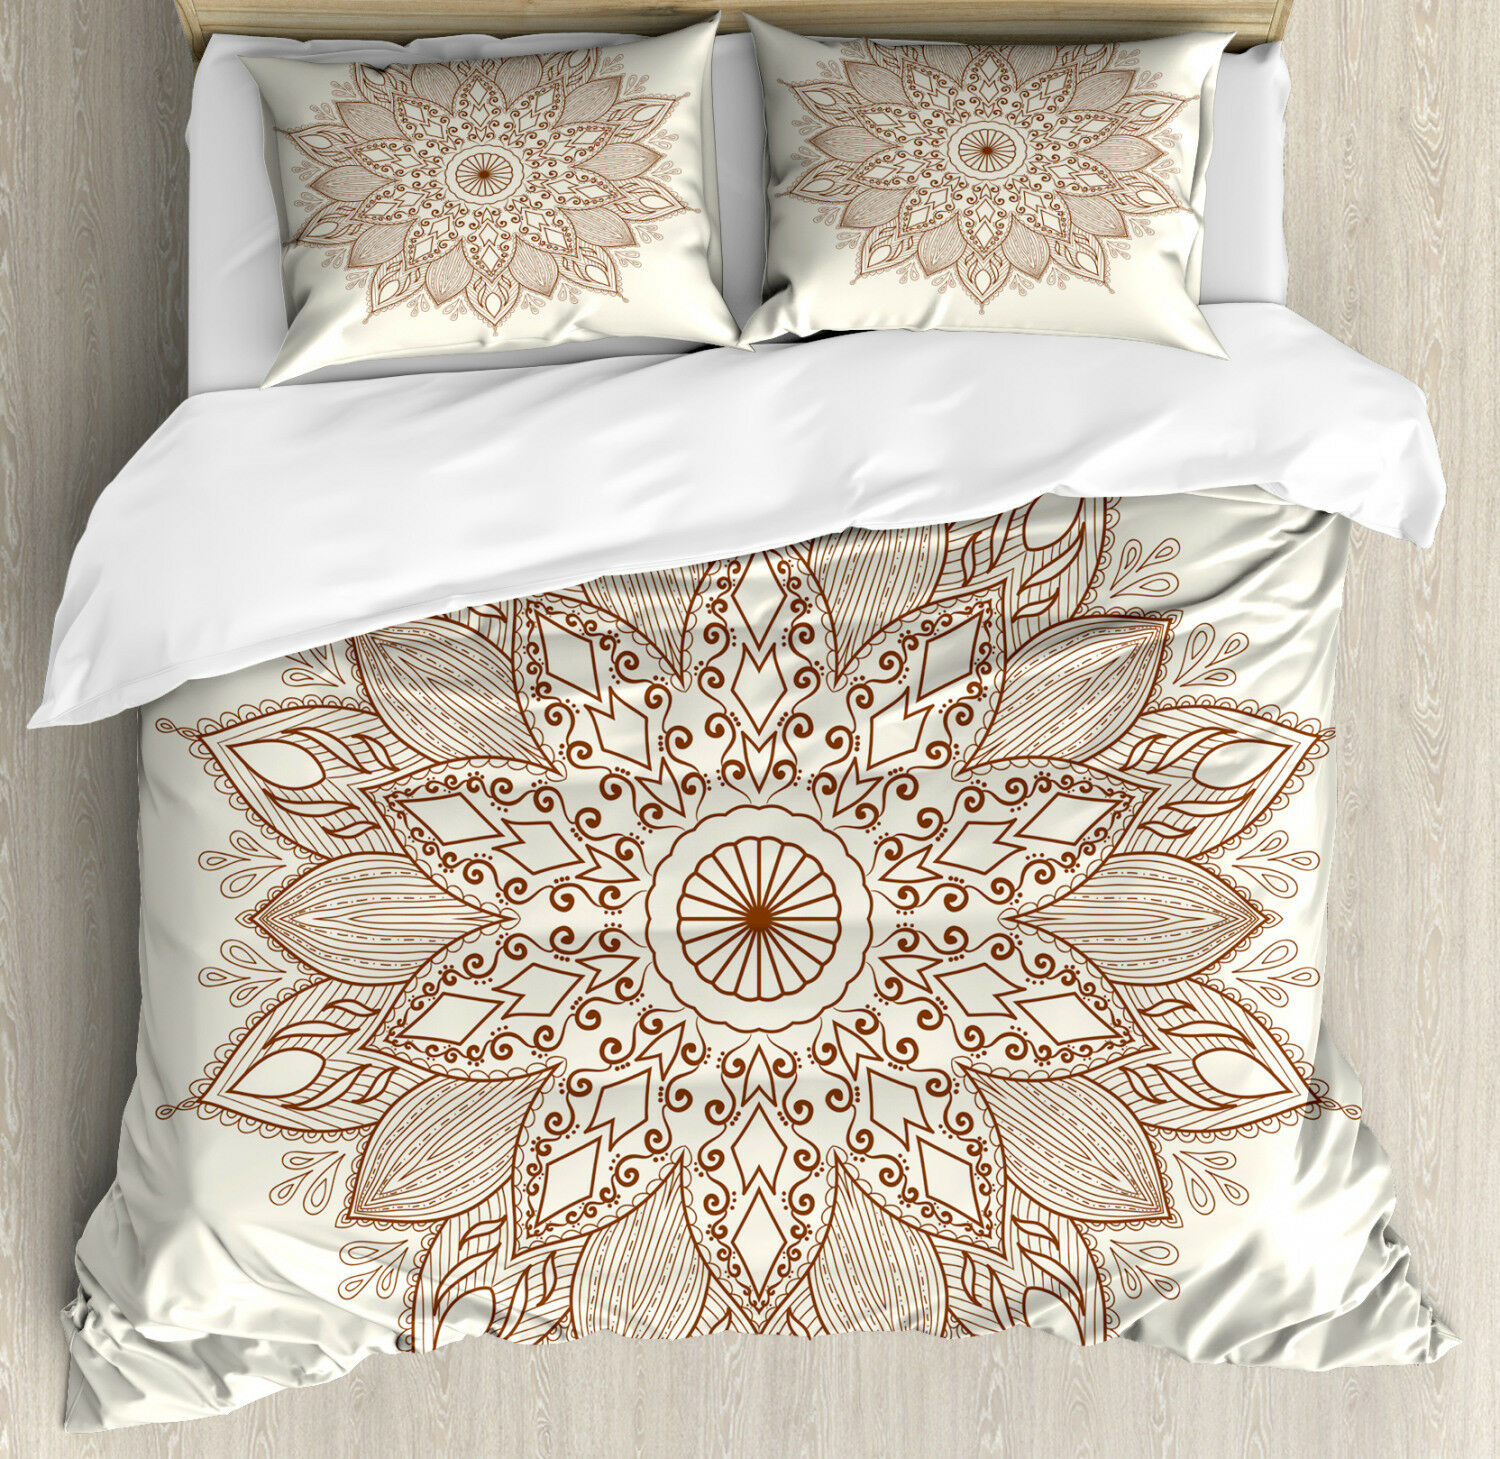 Retro Duvet Cover Set with Pillow Shams Tribal Flower Ethnic Lace Print